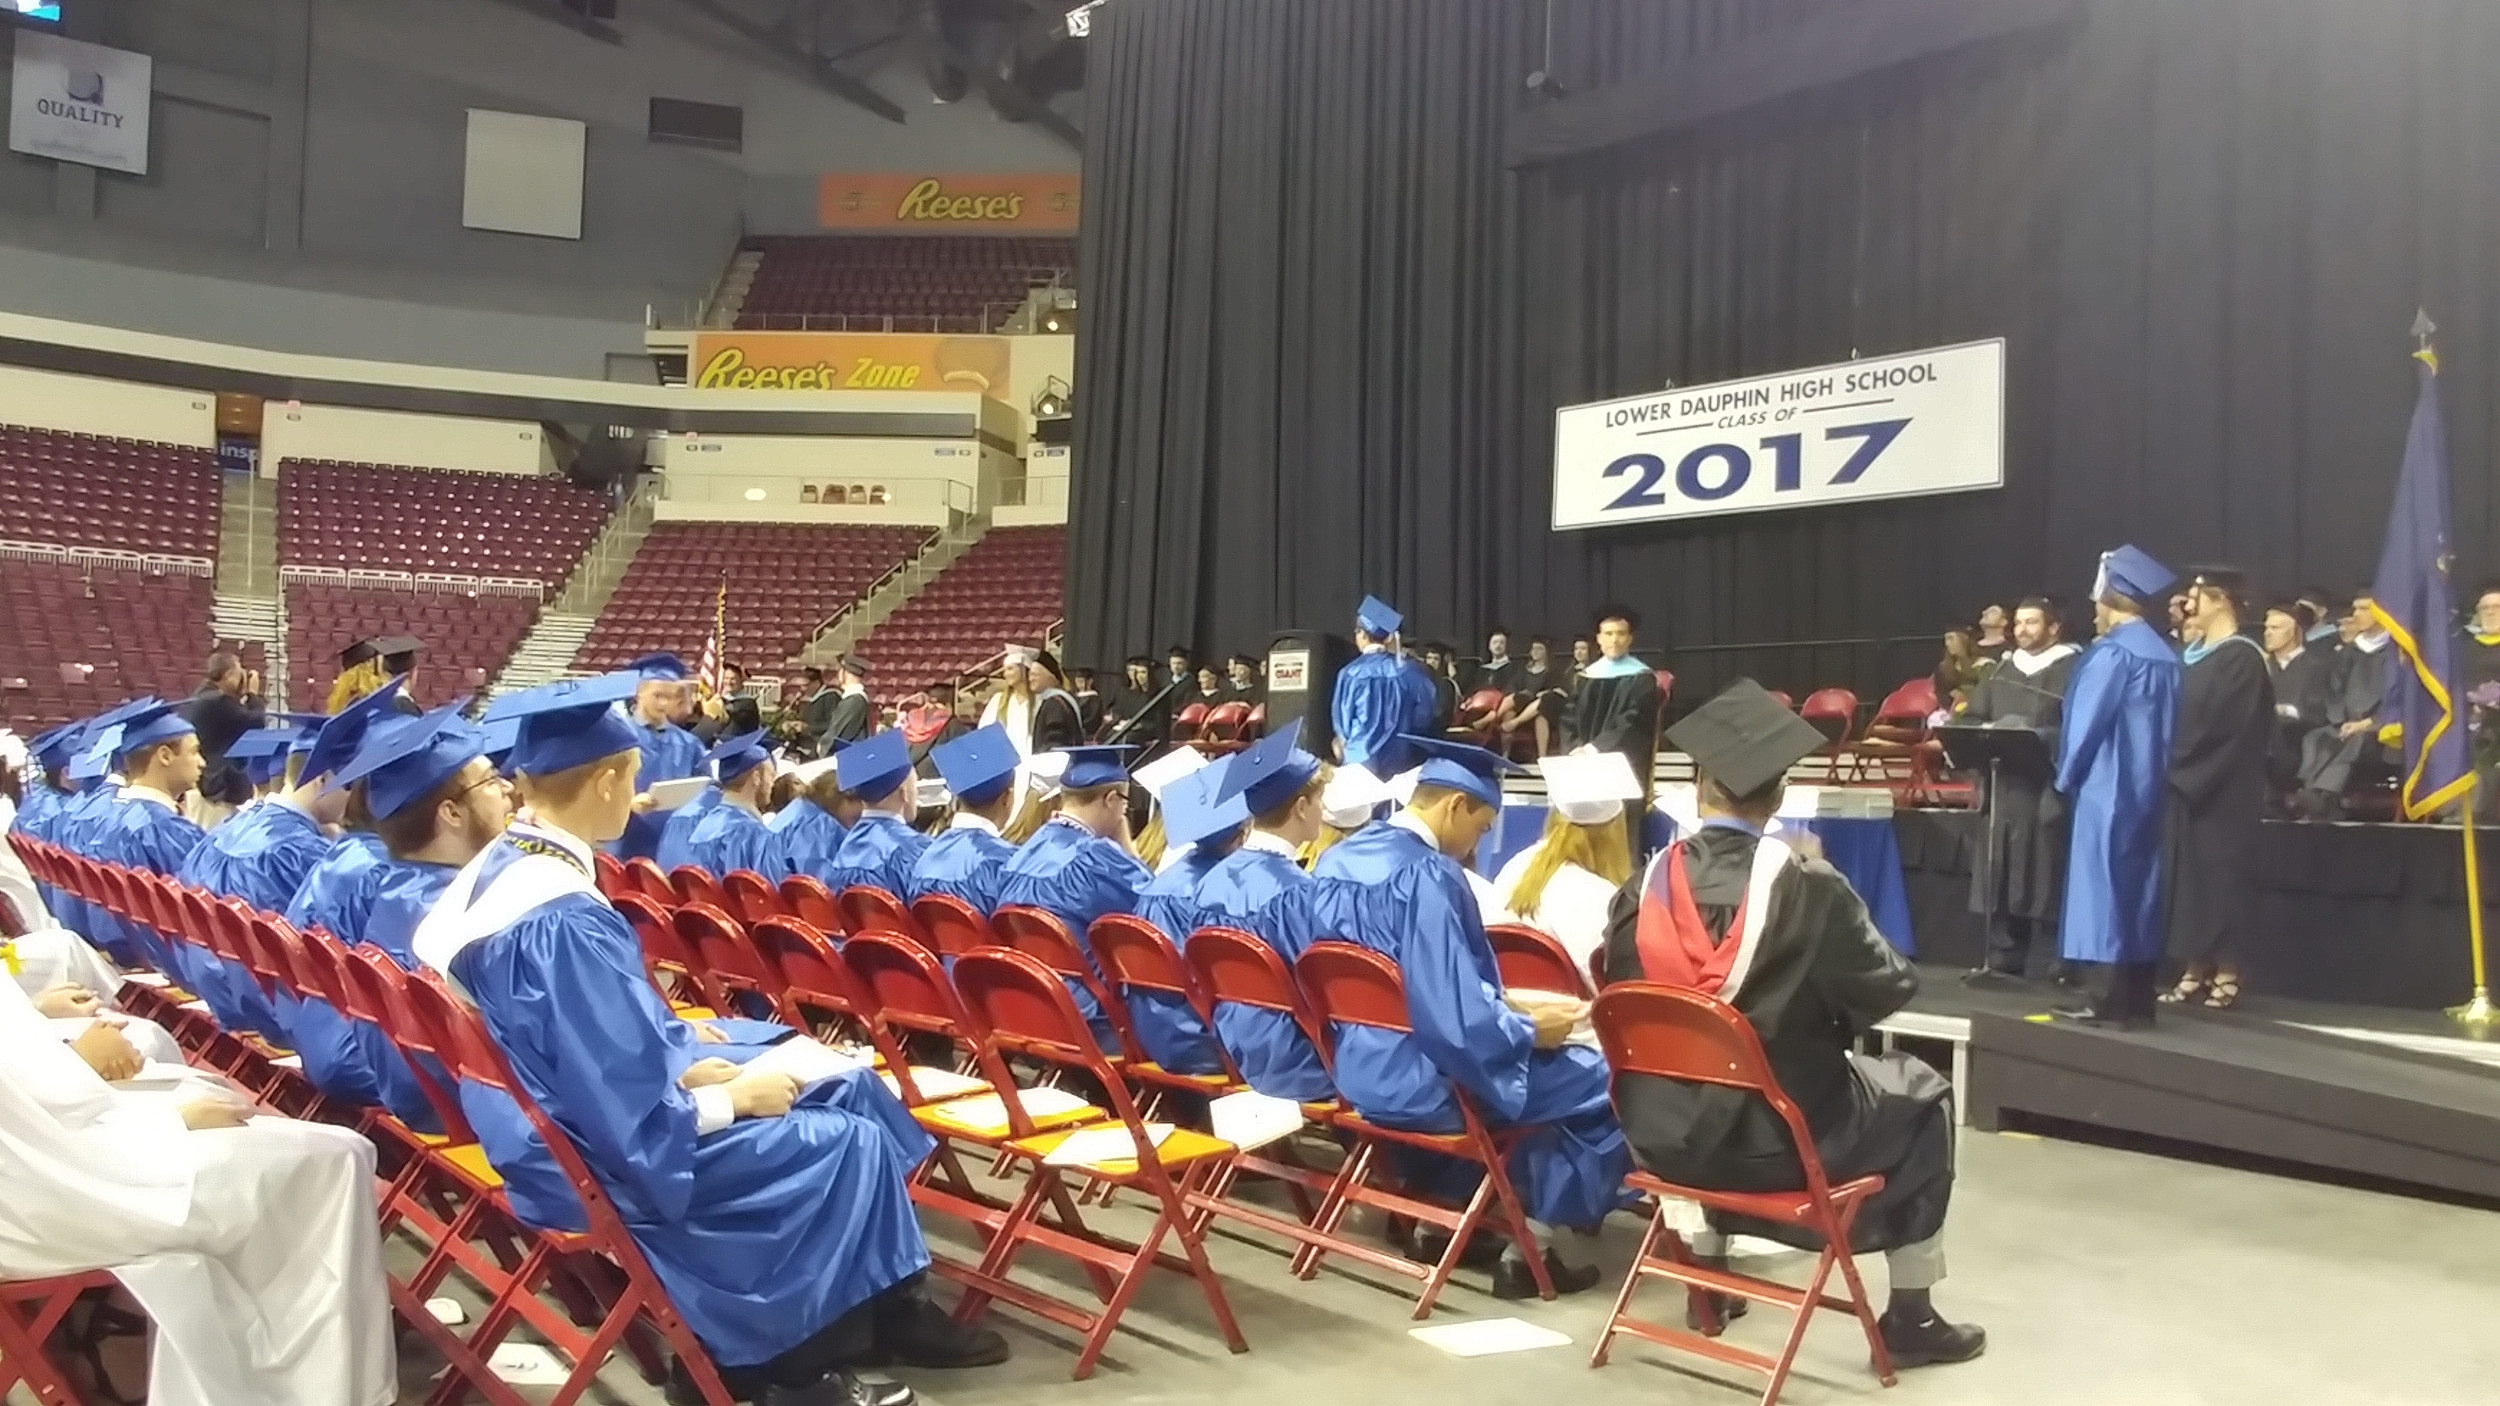 Graduates accept their diplomas during the ceremony. There were 283 members in the Class of 2017 for Lower Dauphin.